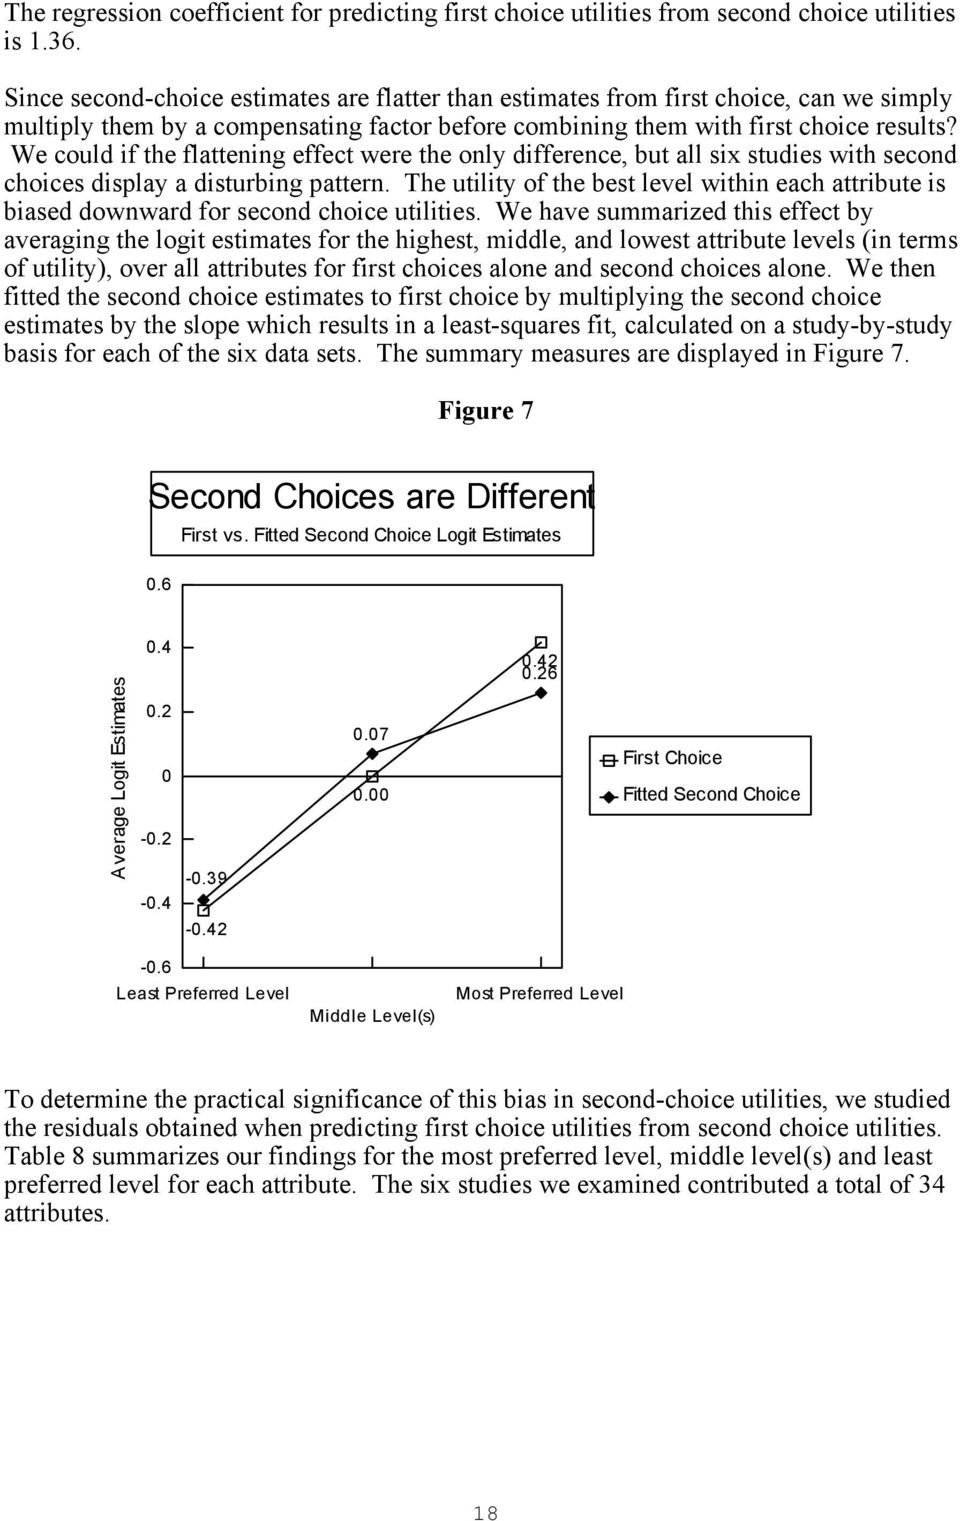 We could if the flattening effect were the only difference, but all six studies with second choices display a disturbing pattern.